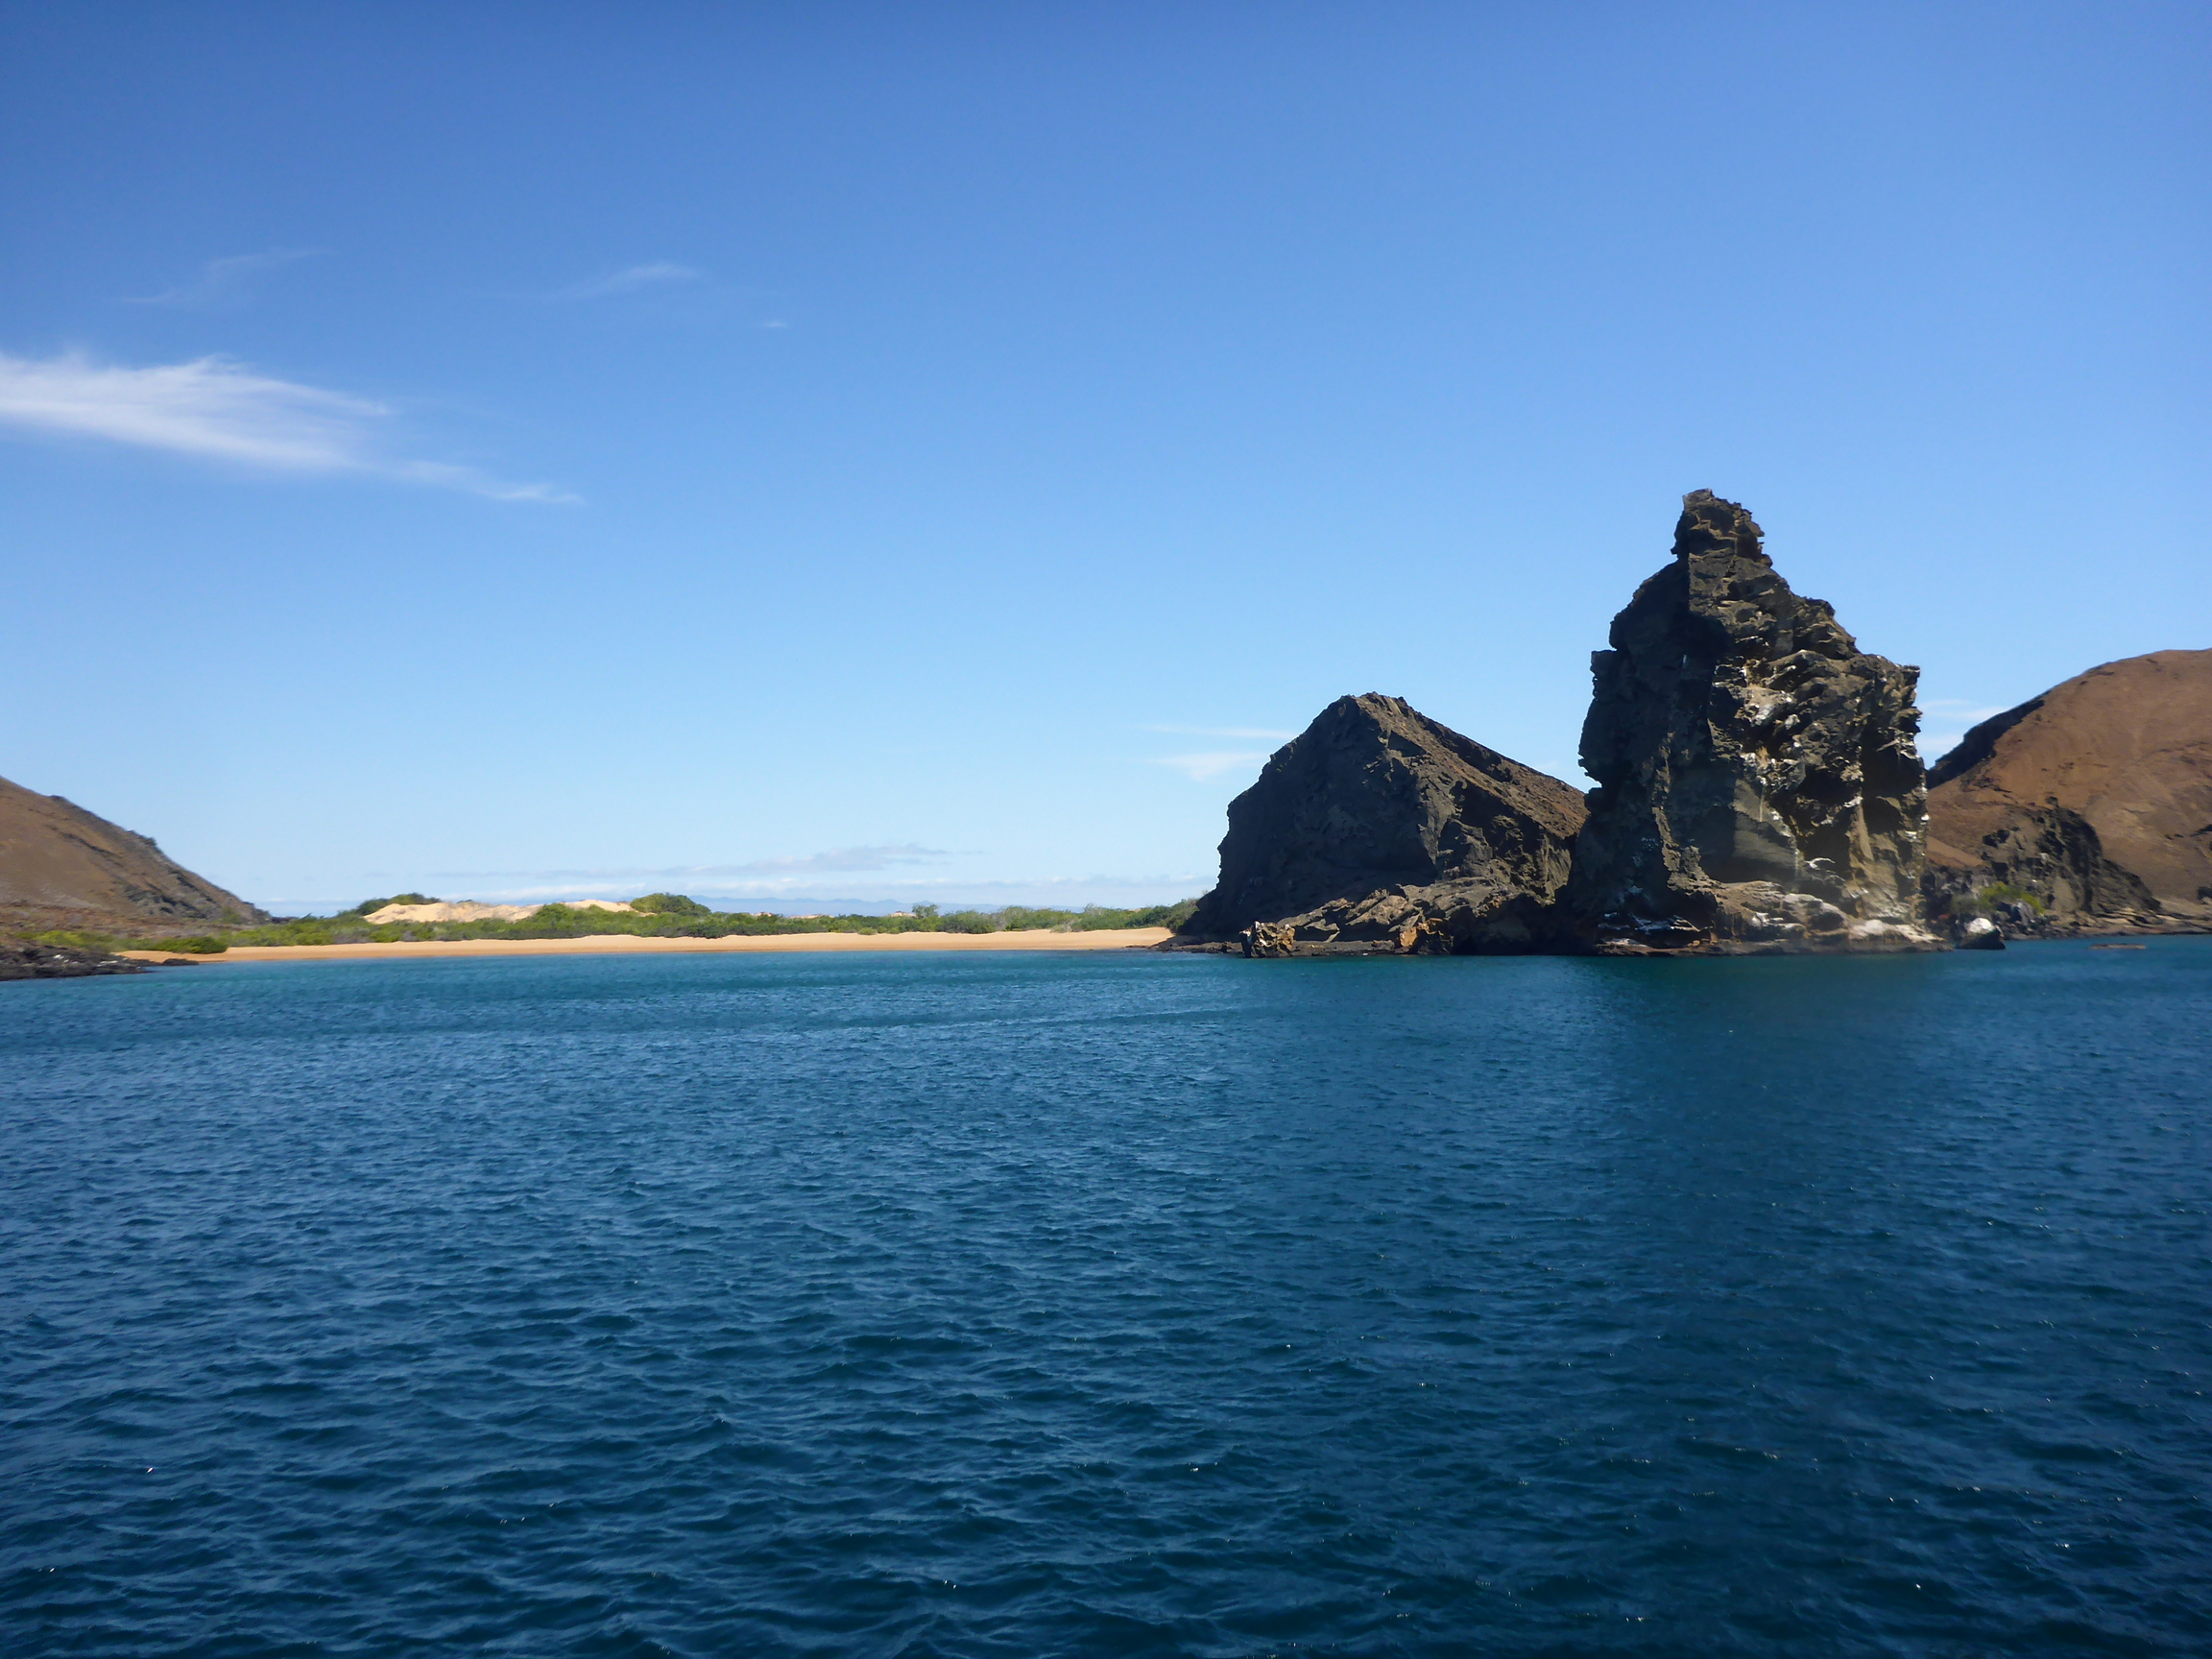 4 Unexpected Writing Lessons From The Galapagos Islands